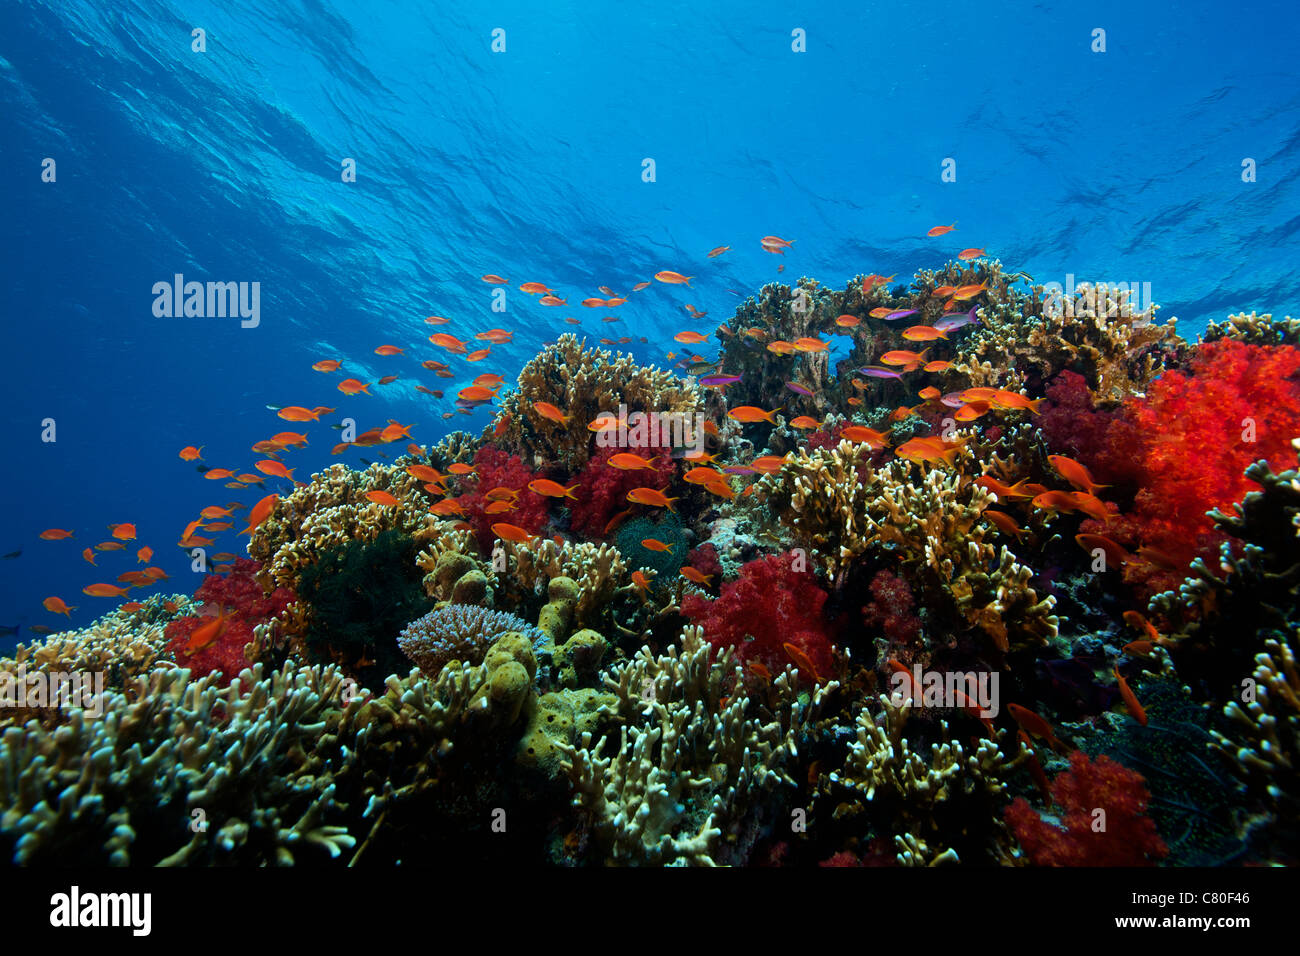 A school of orange basslets (Pseudanthias squamipinnis) on a healthy coral reef, Fiji. - Stock Image